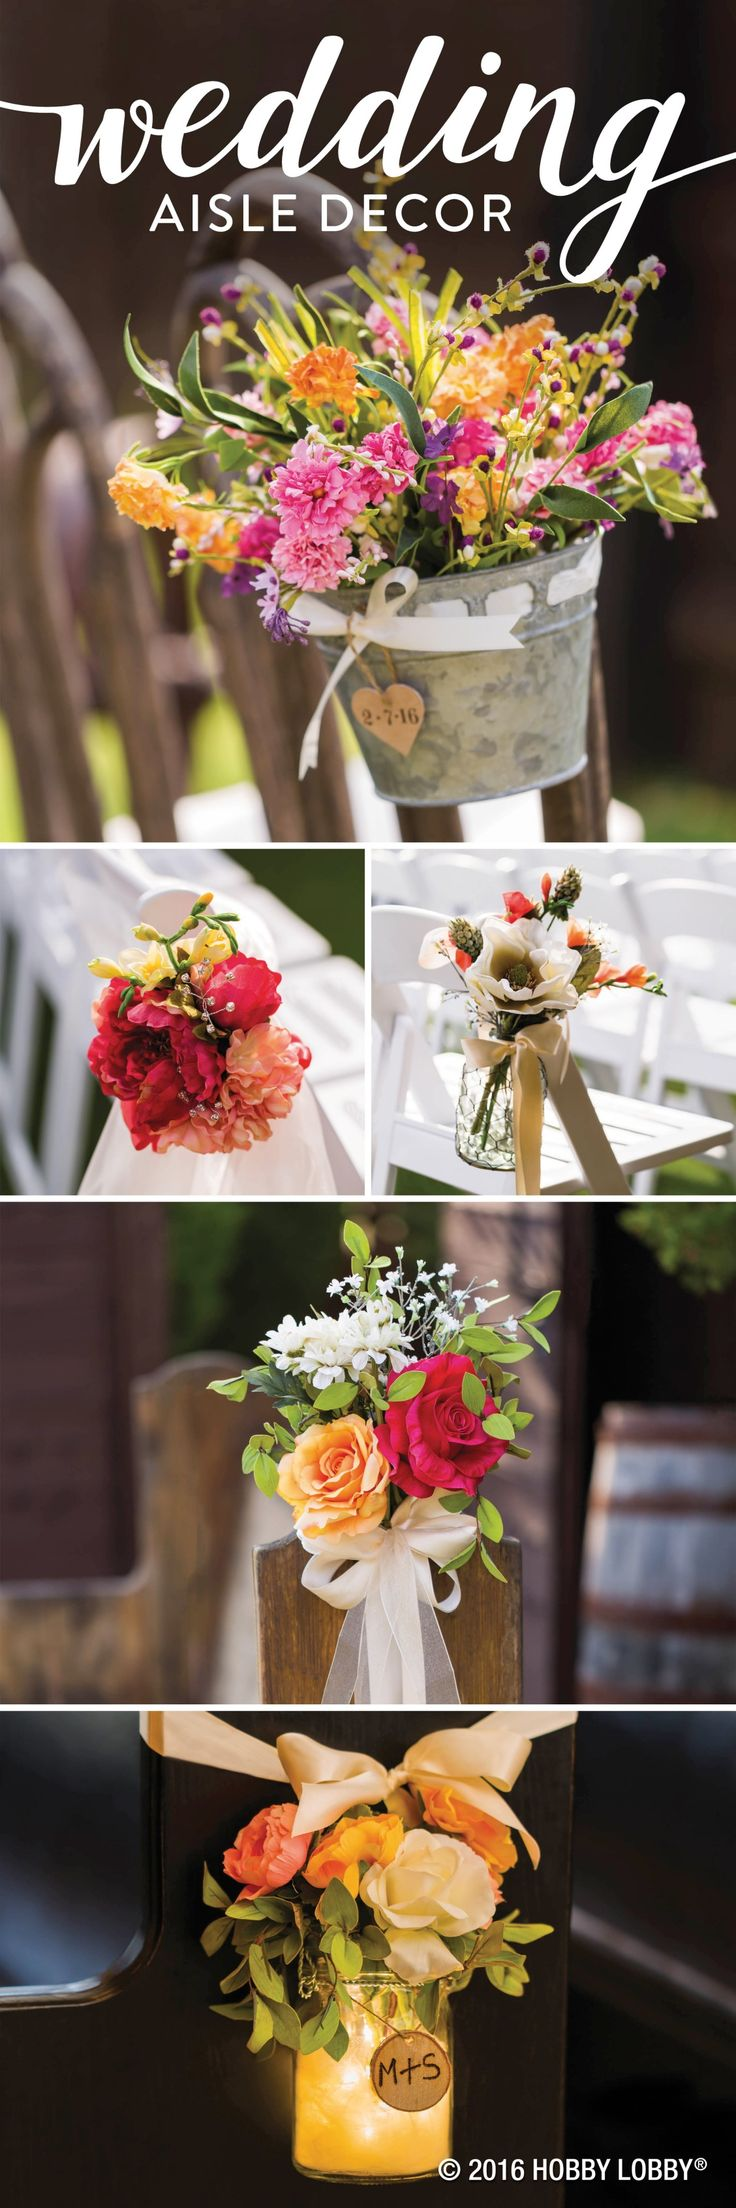 17 Best images about DIY Wedding Ideas on Pinterest  Leveon bell Elegant bridal shower and